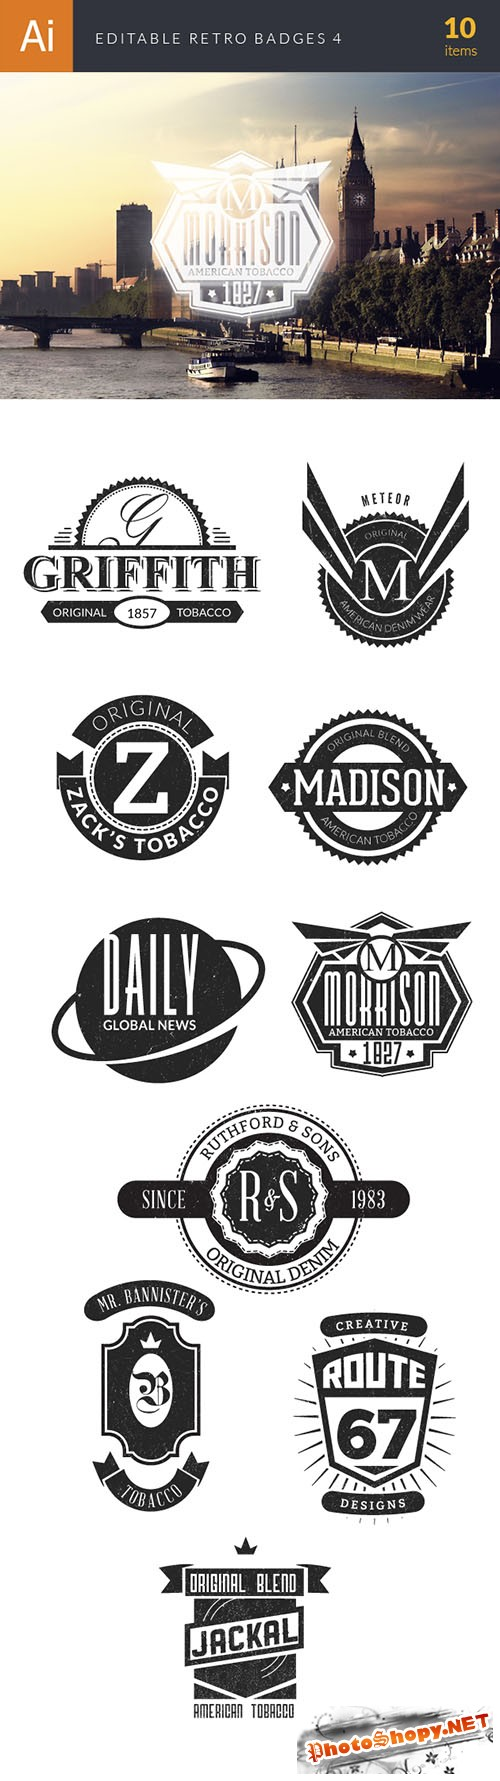 Editable Retro Badges Vector Illustrations Pack 4